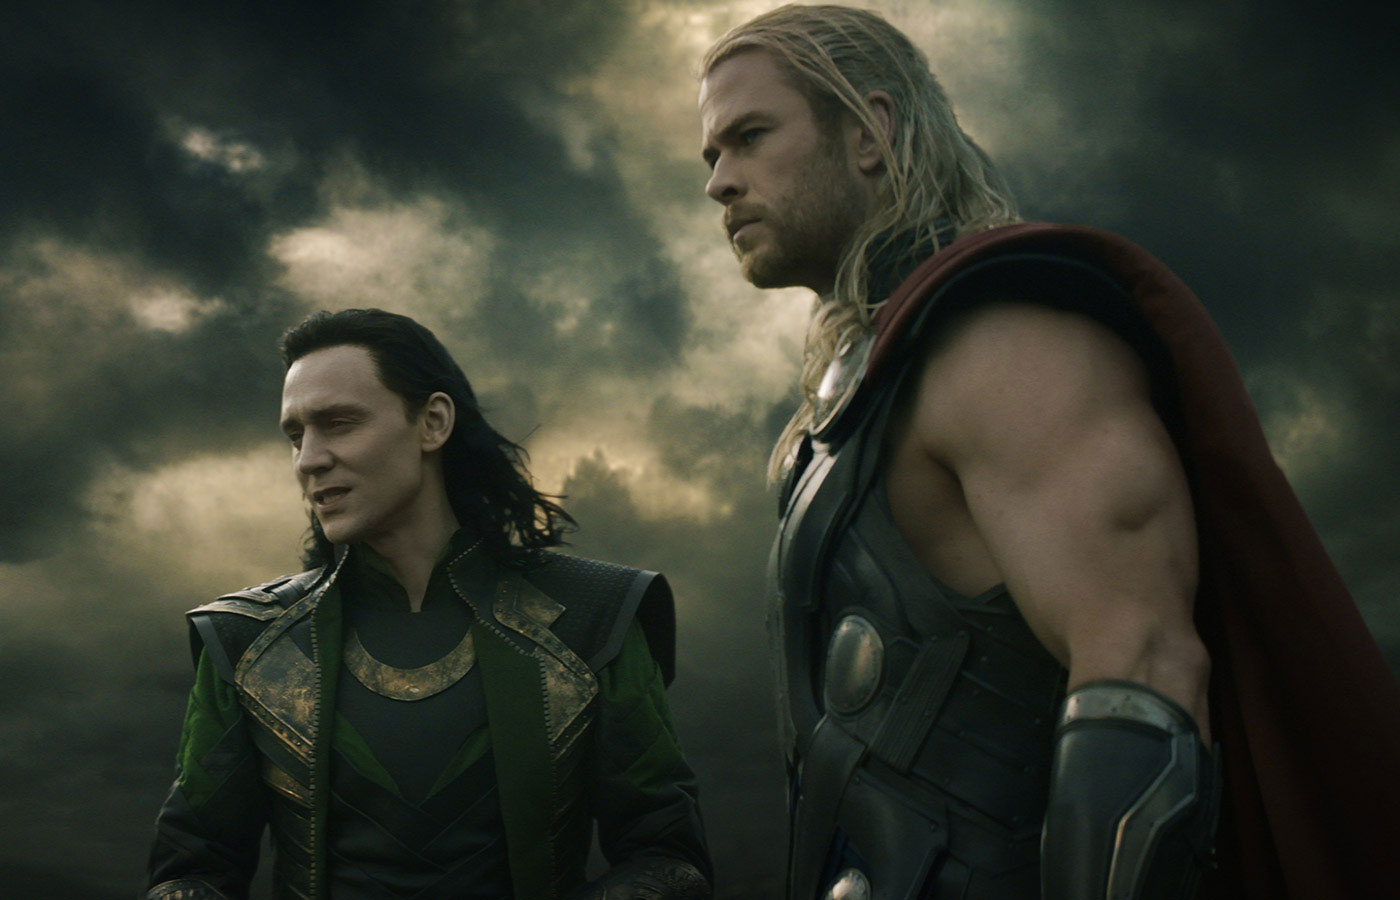 Thor 2 The Dark World 2013 Movie Wallpapers HD Facebook Covers 1400x900